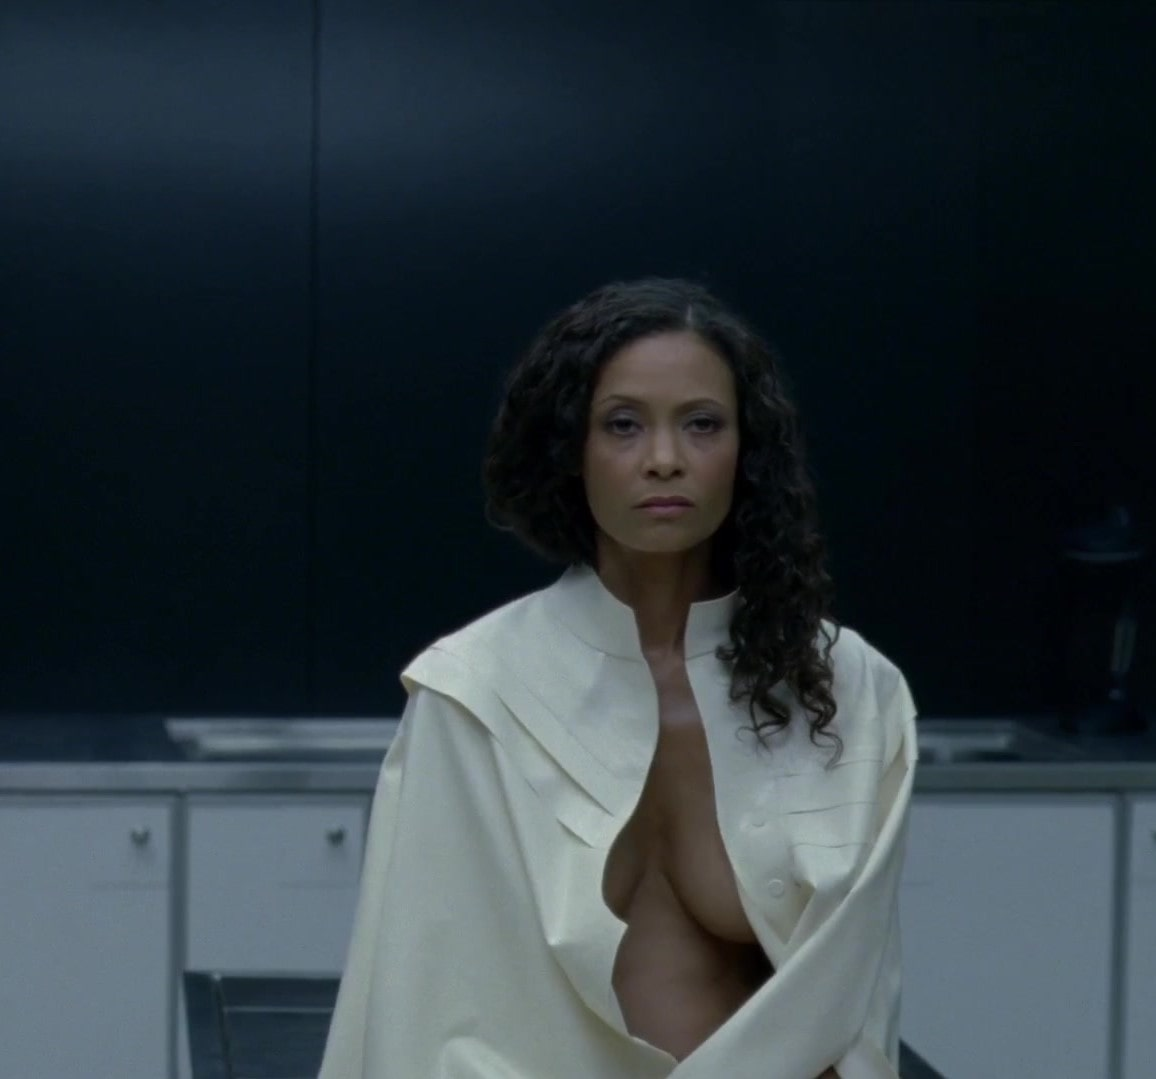 49 Hot Pictures Thandie Newton Pictures Show Off Her Classy And Sexy